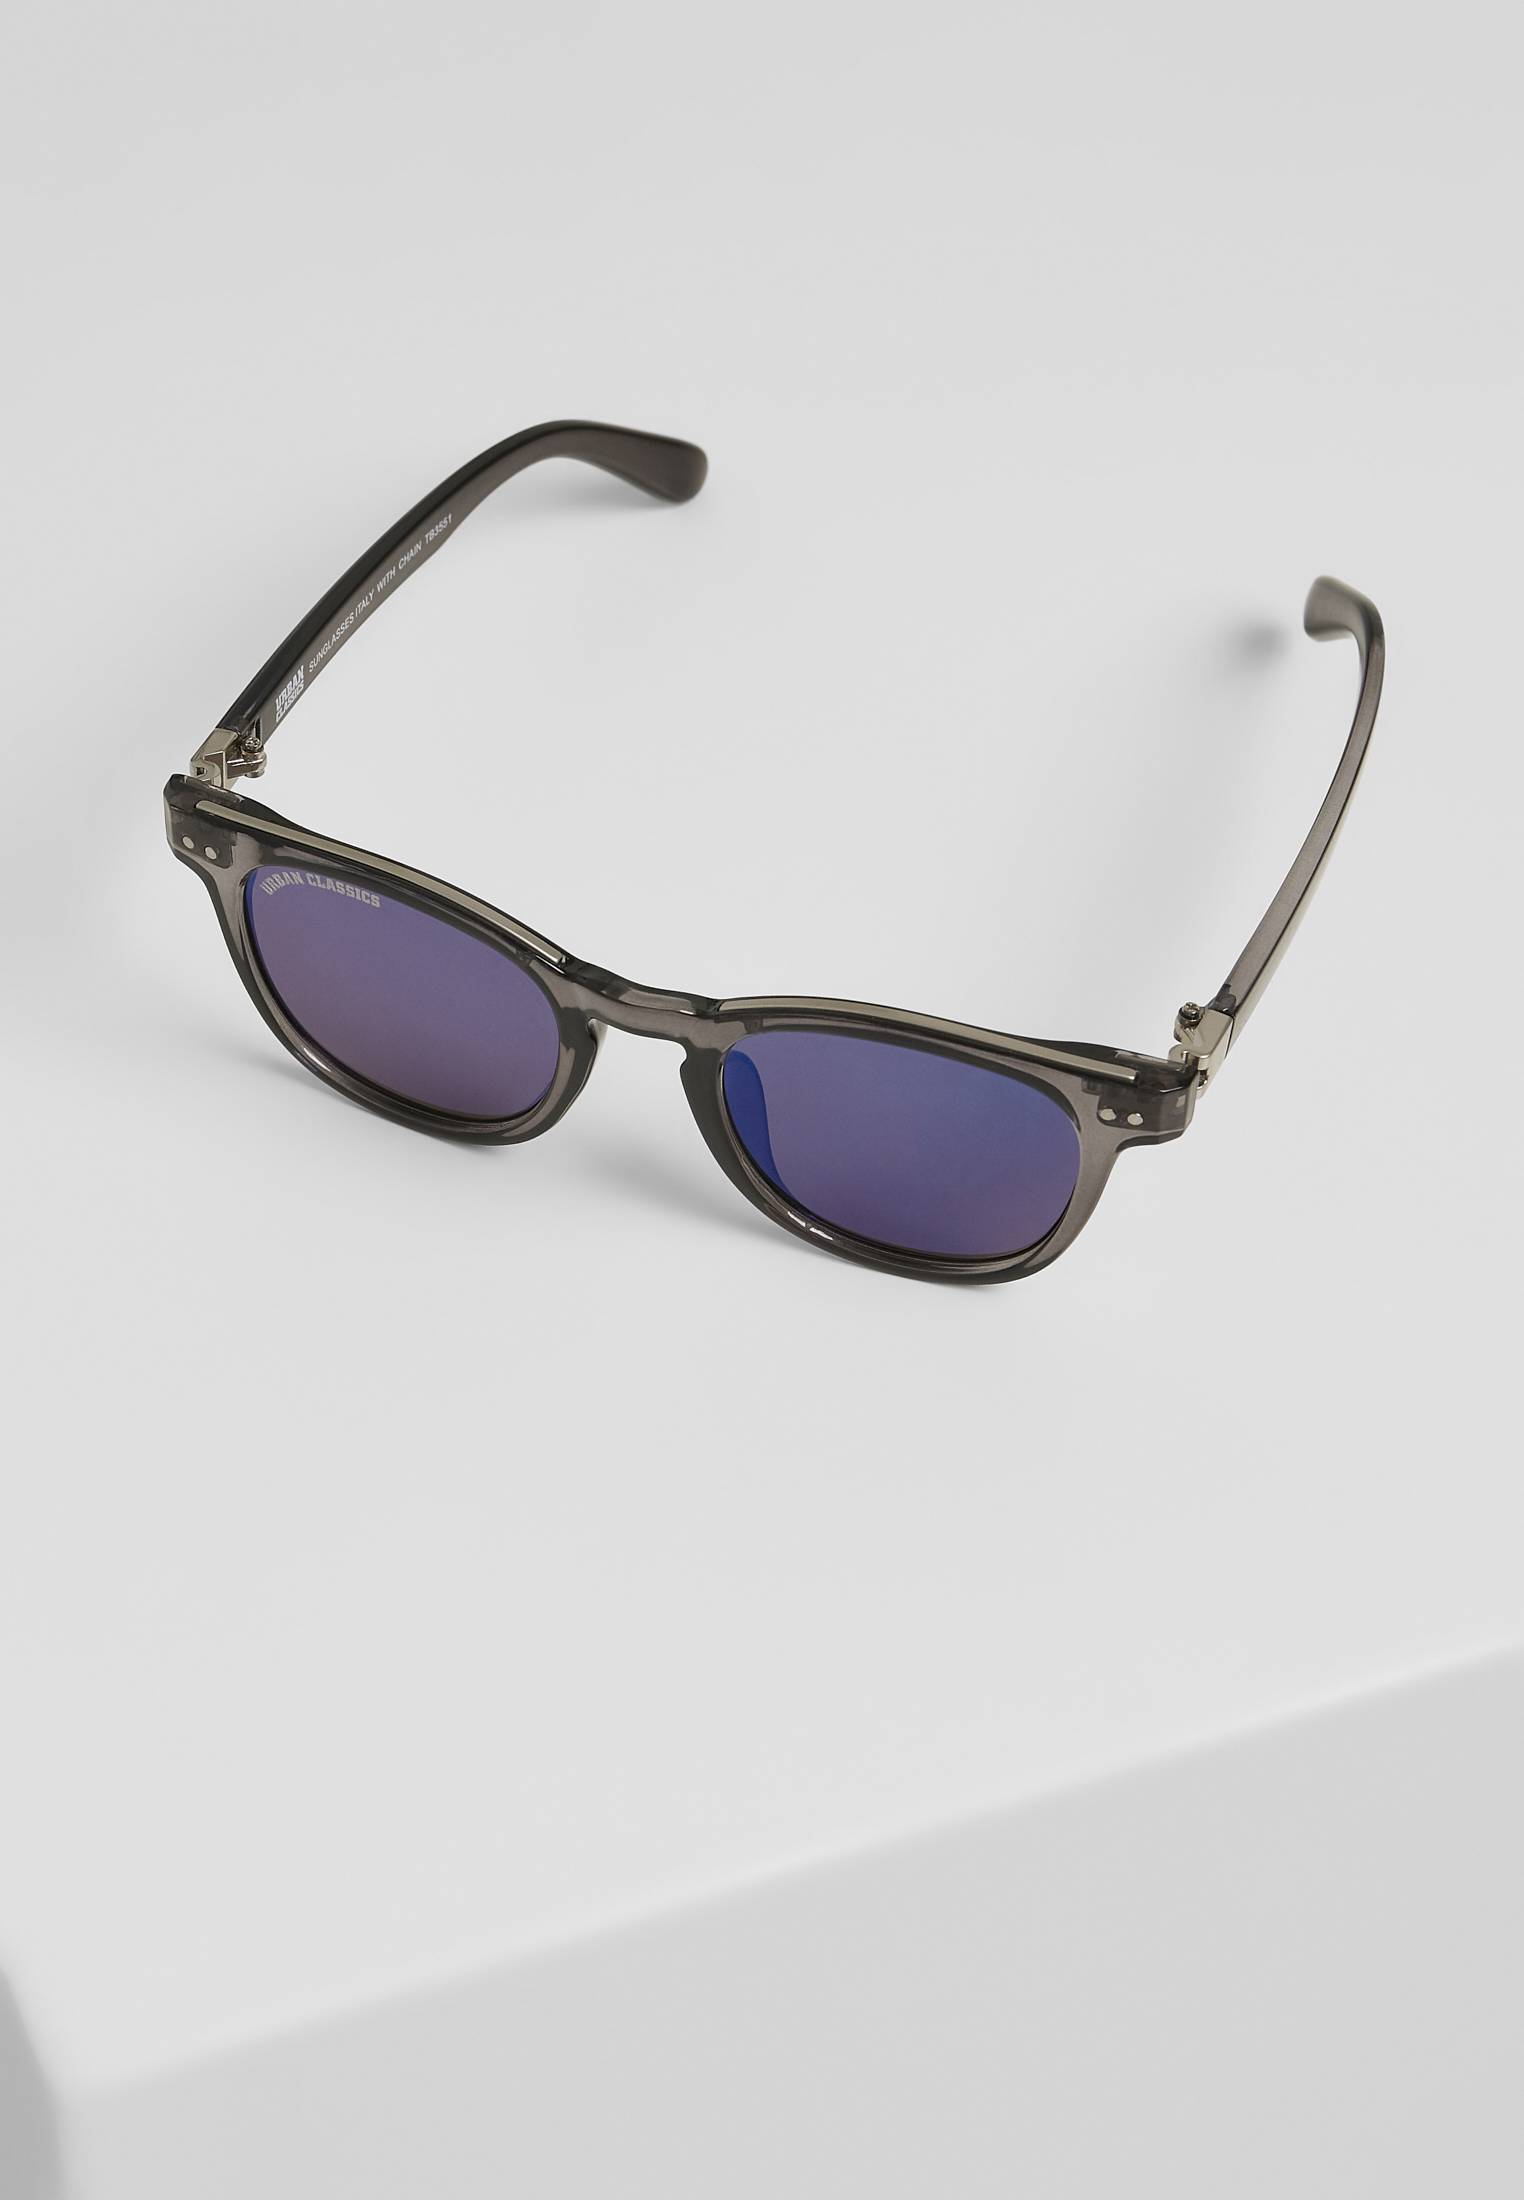 Urban Classics Sunglasses Italy with chain grey/silver/silver - One Size